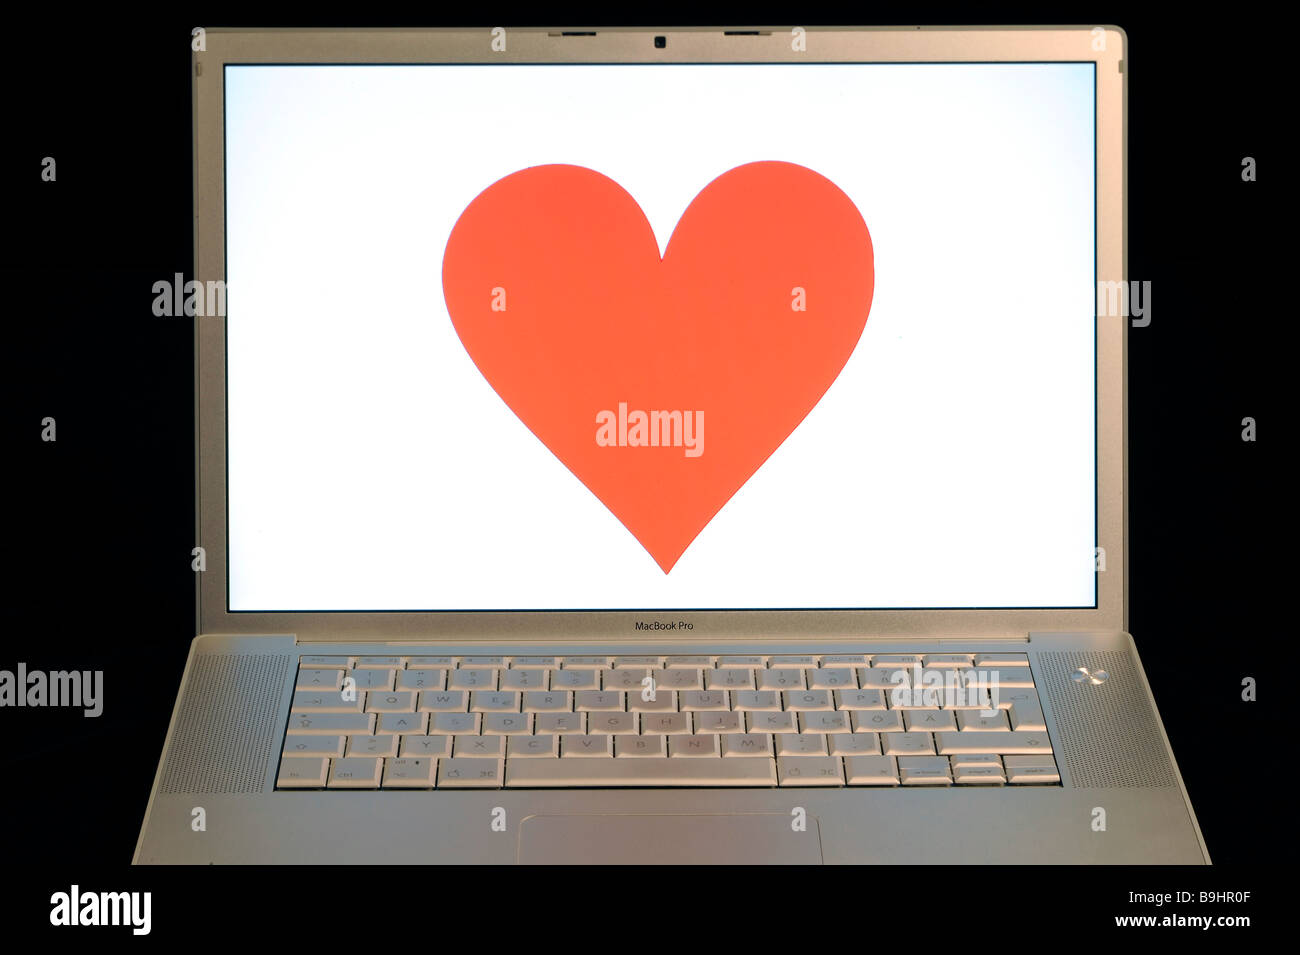 Heart on an Apple MacBook Pro screen, symbol for online dating Stock